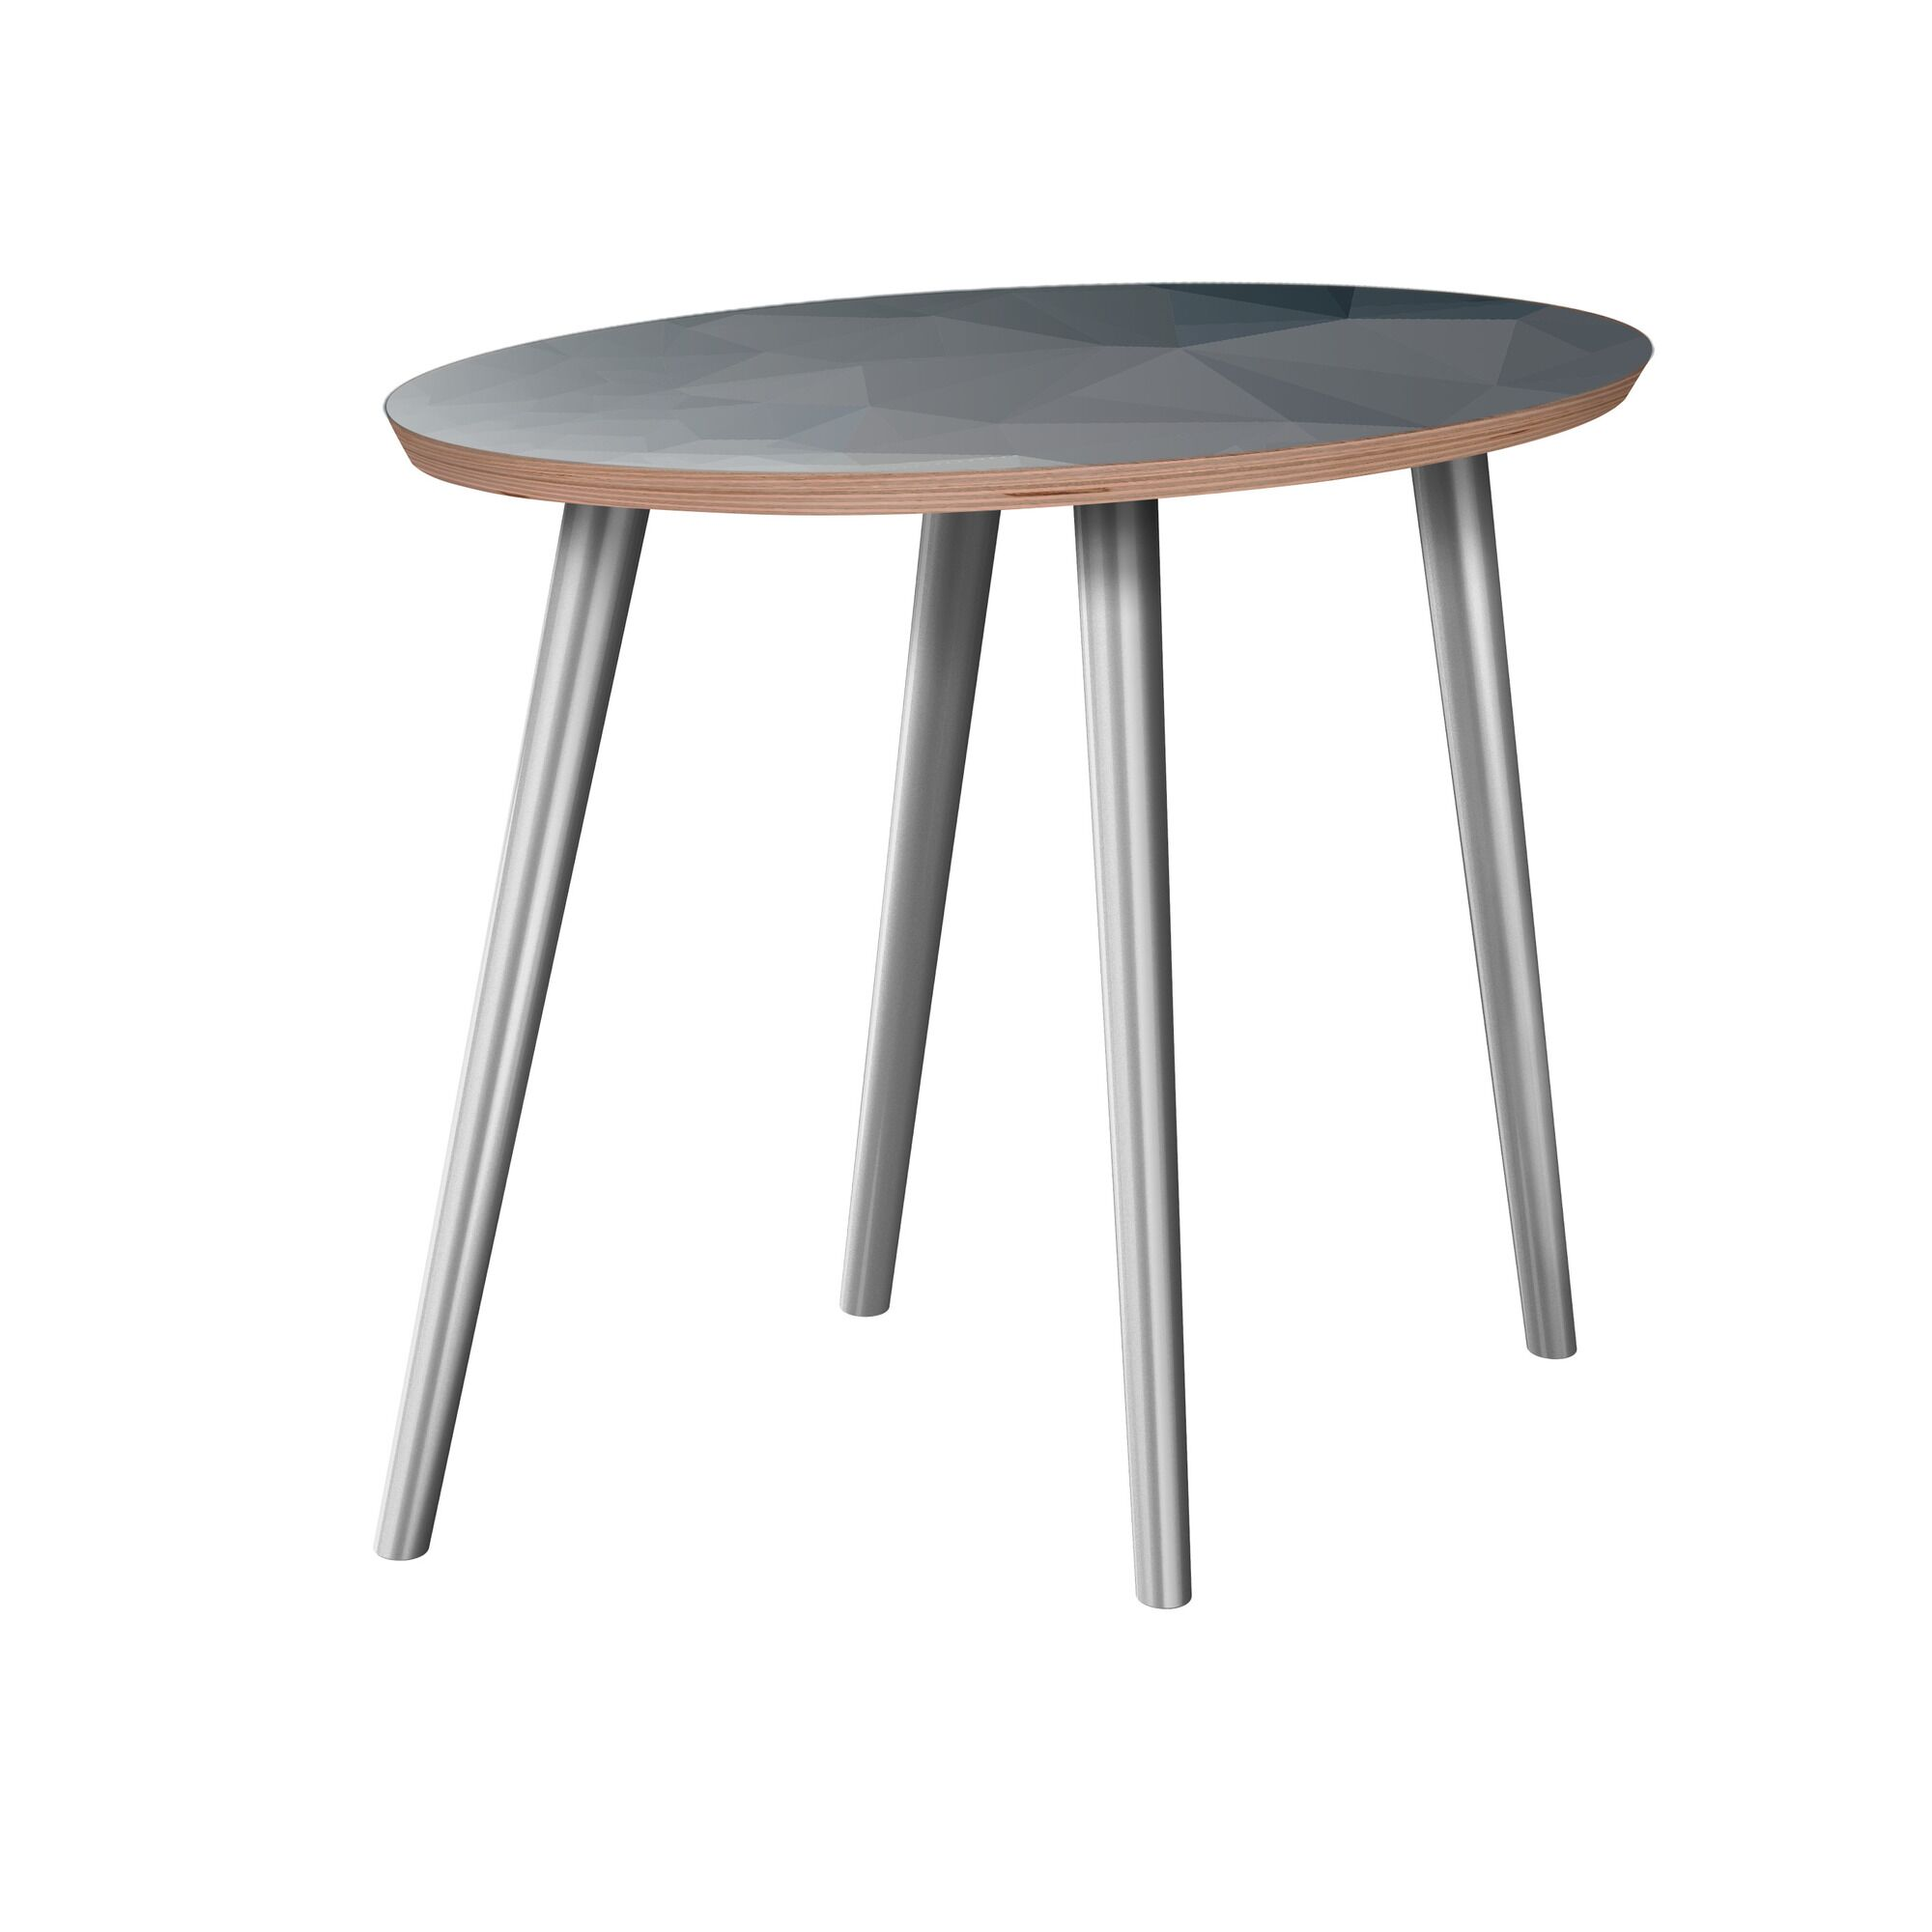 Rhymer End Table Table Base Color: Chrome, Table Top Boarder Color: Walnut, Table Top Color: Blue